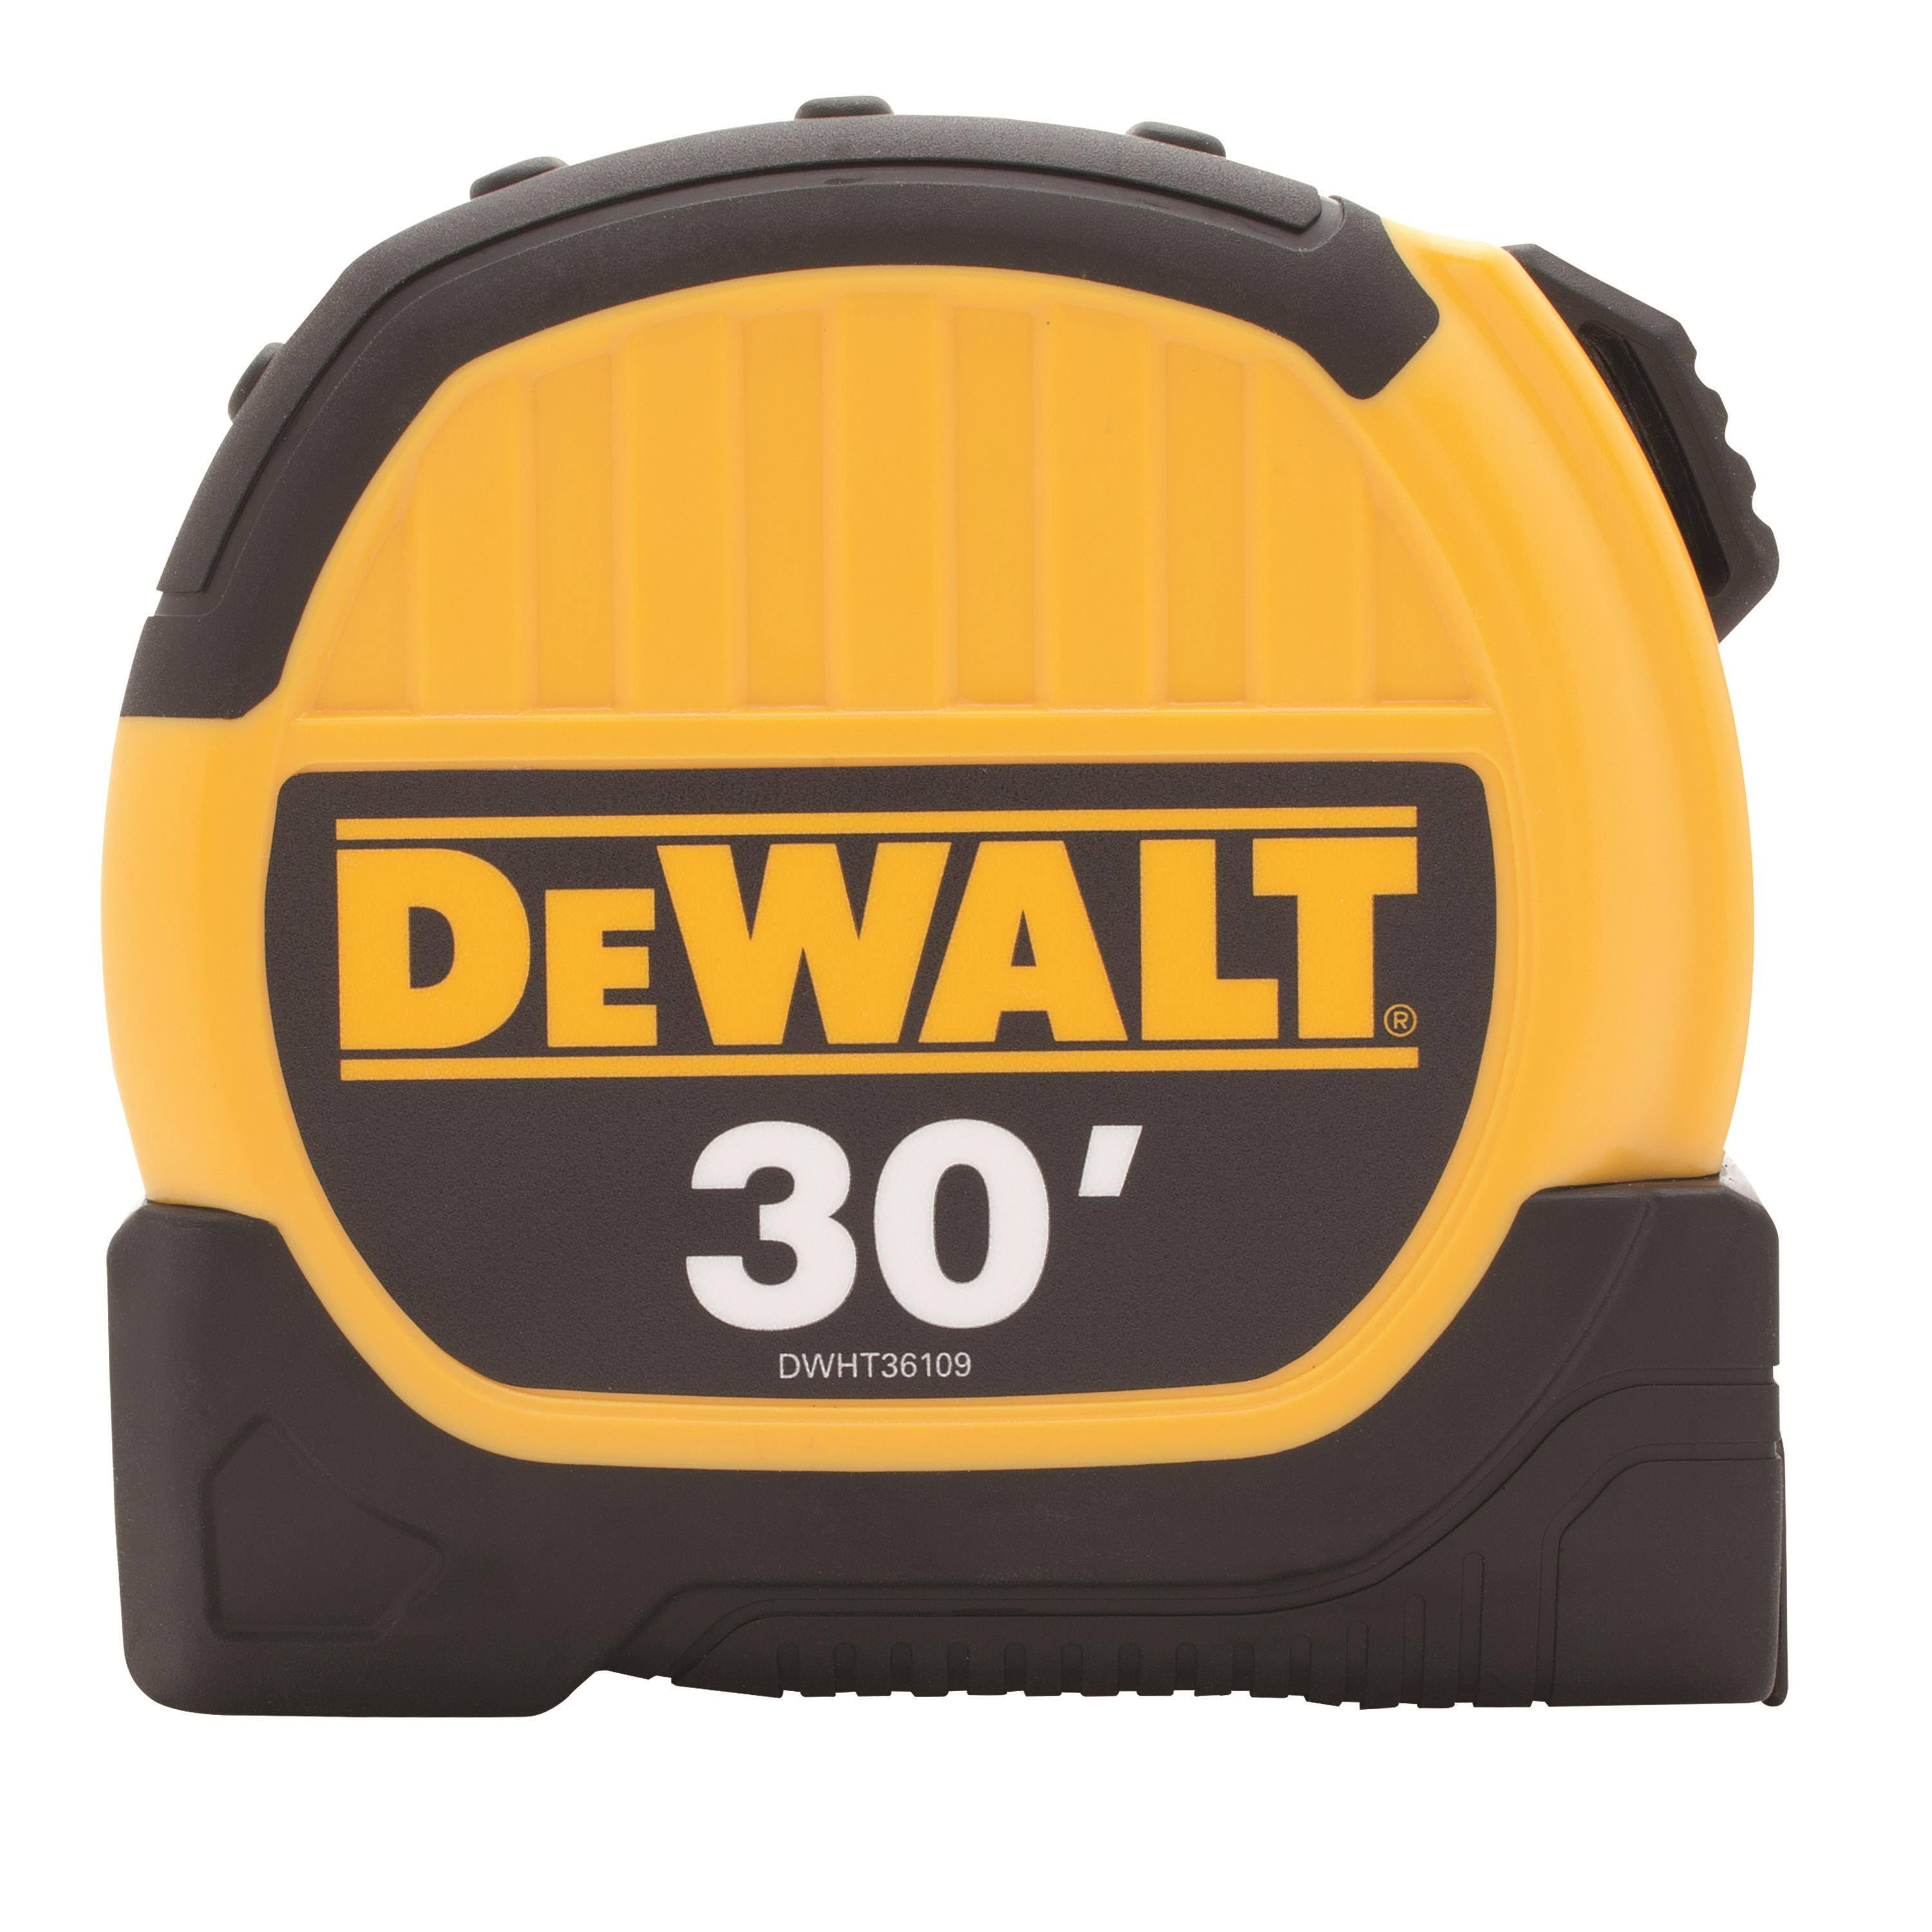 Dewalt Tape Measure - 30'